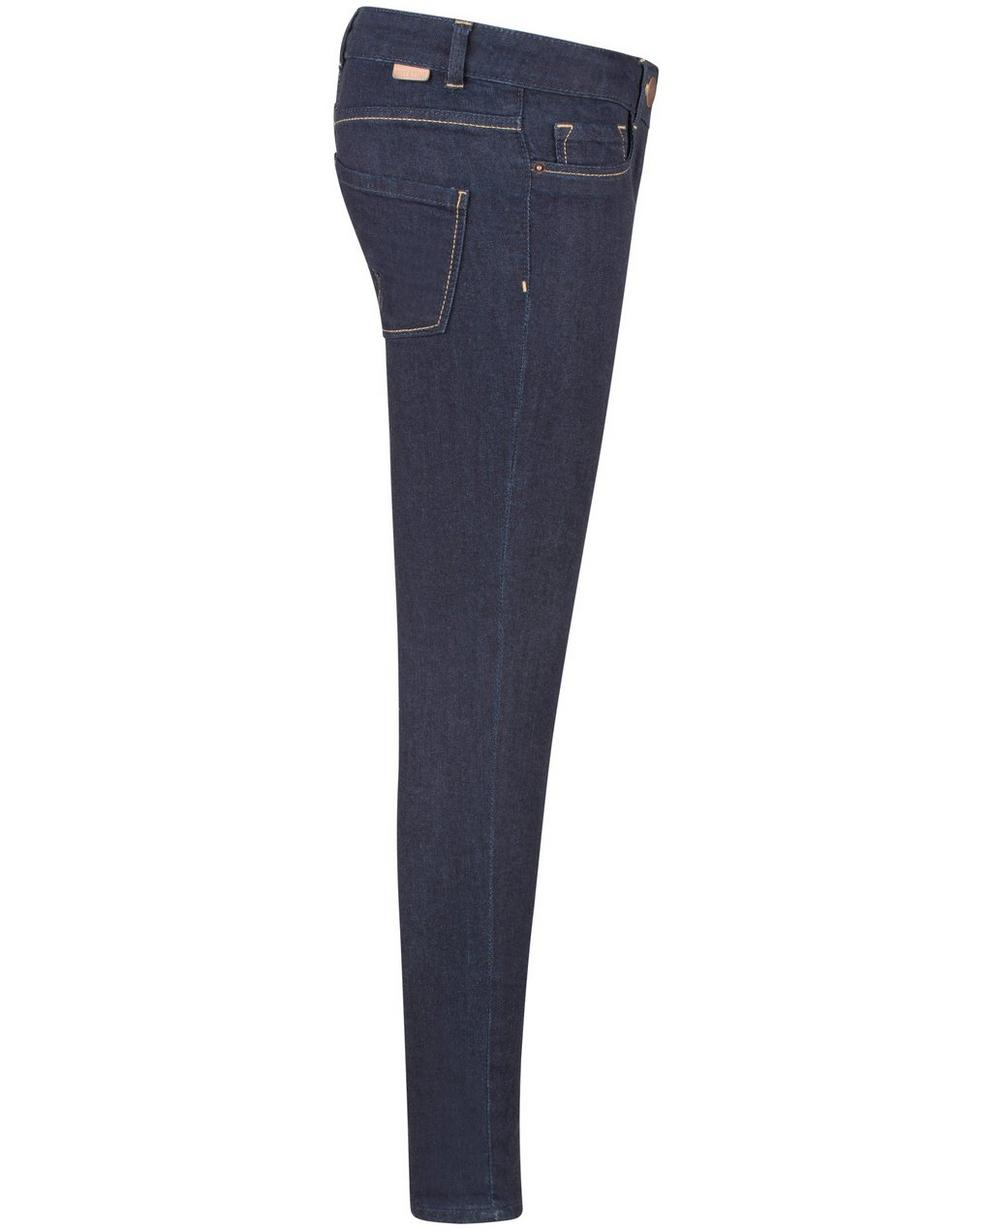 Jeans - navy - Jeans skinny MARIE